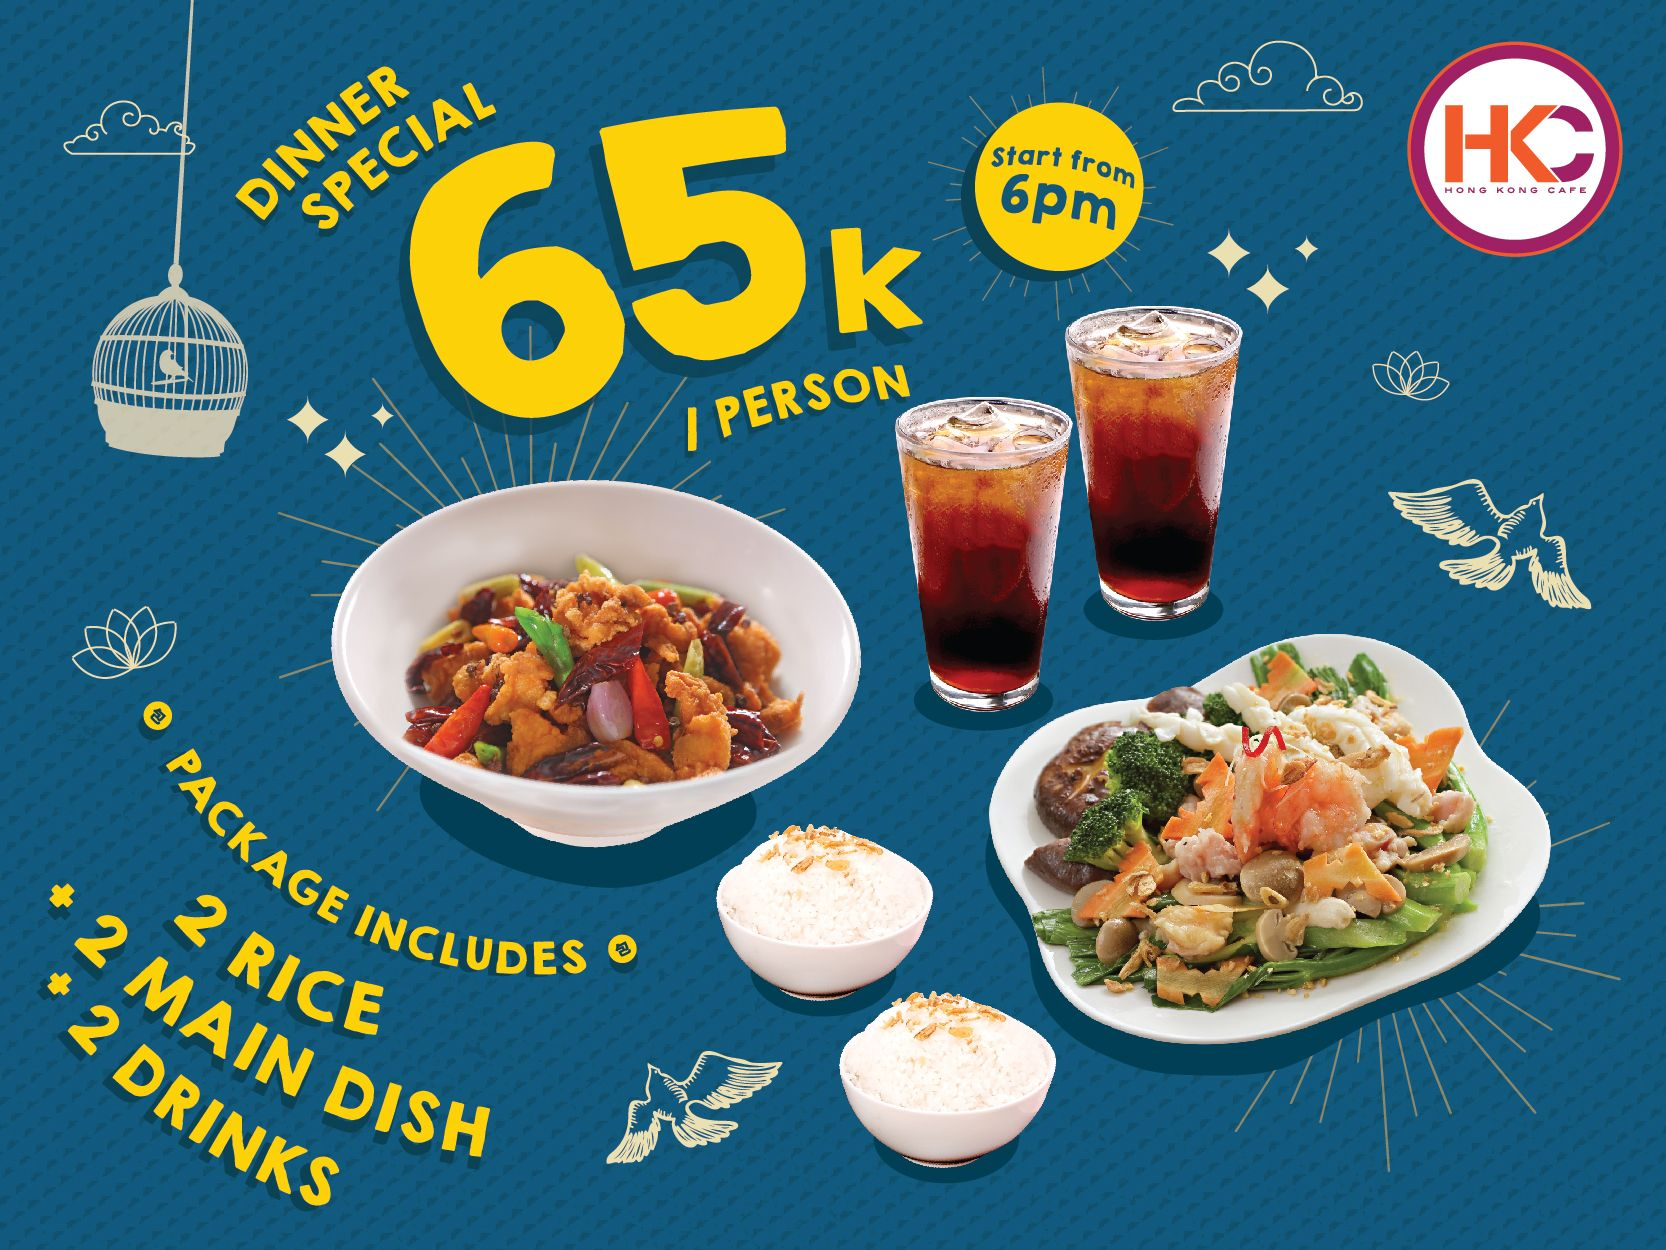 DINNER SPECIAL ONLY IDR 65K / PERSON image